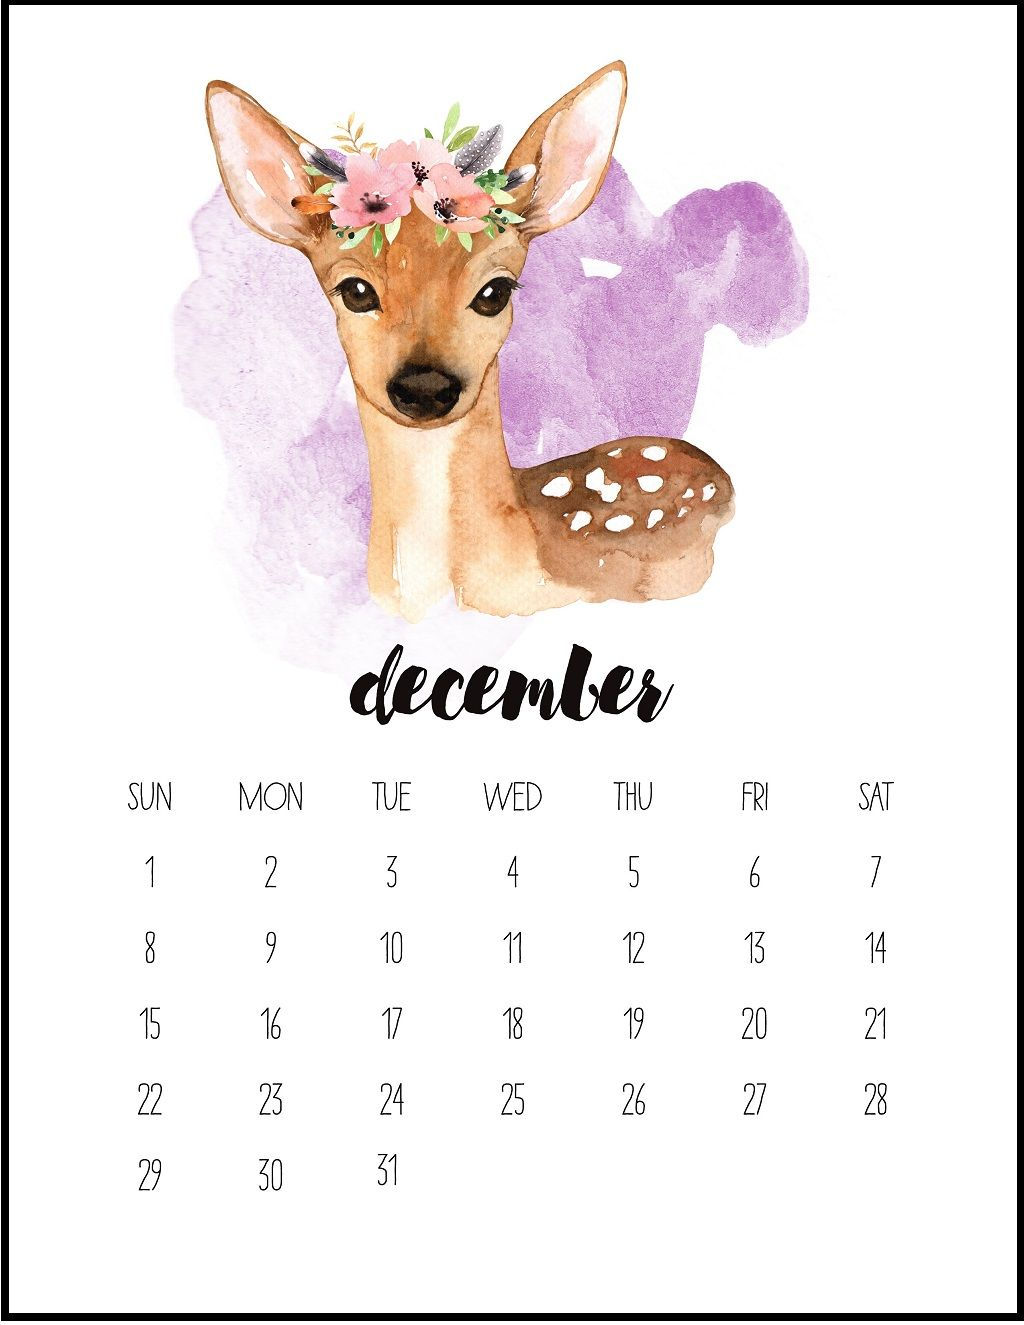 December 2019 Calendar Animals Watercolor December 2019 Printable Calendar. | IG POST | December